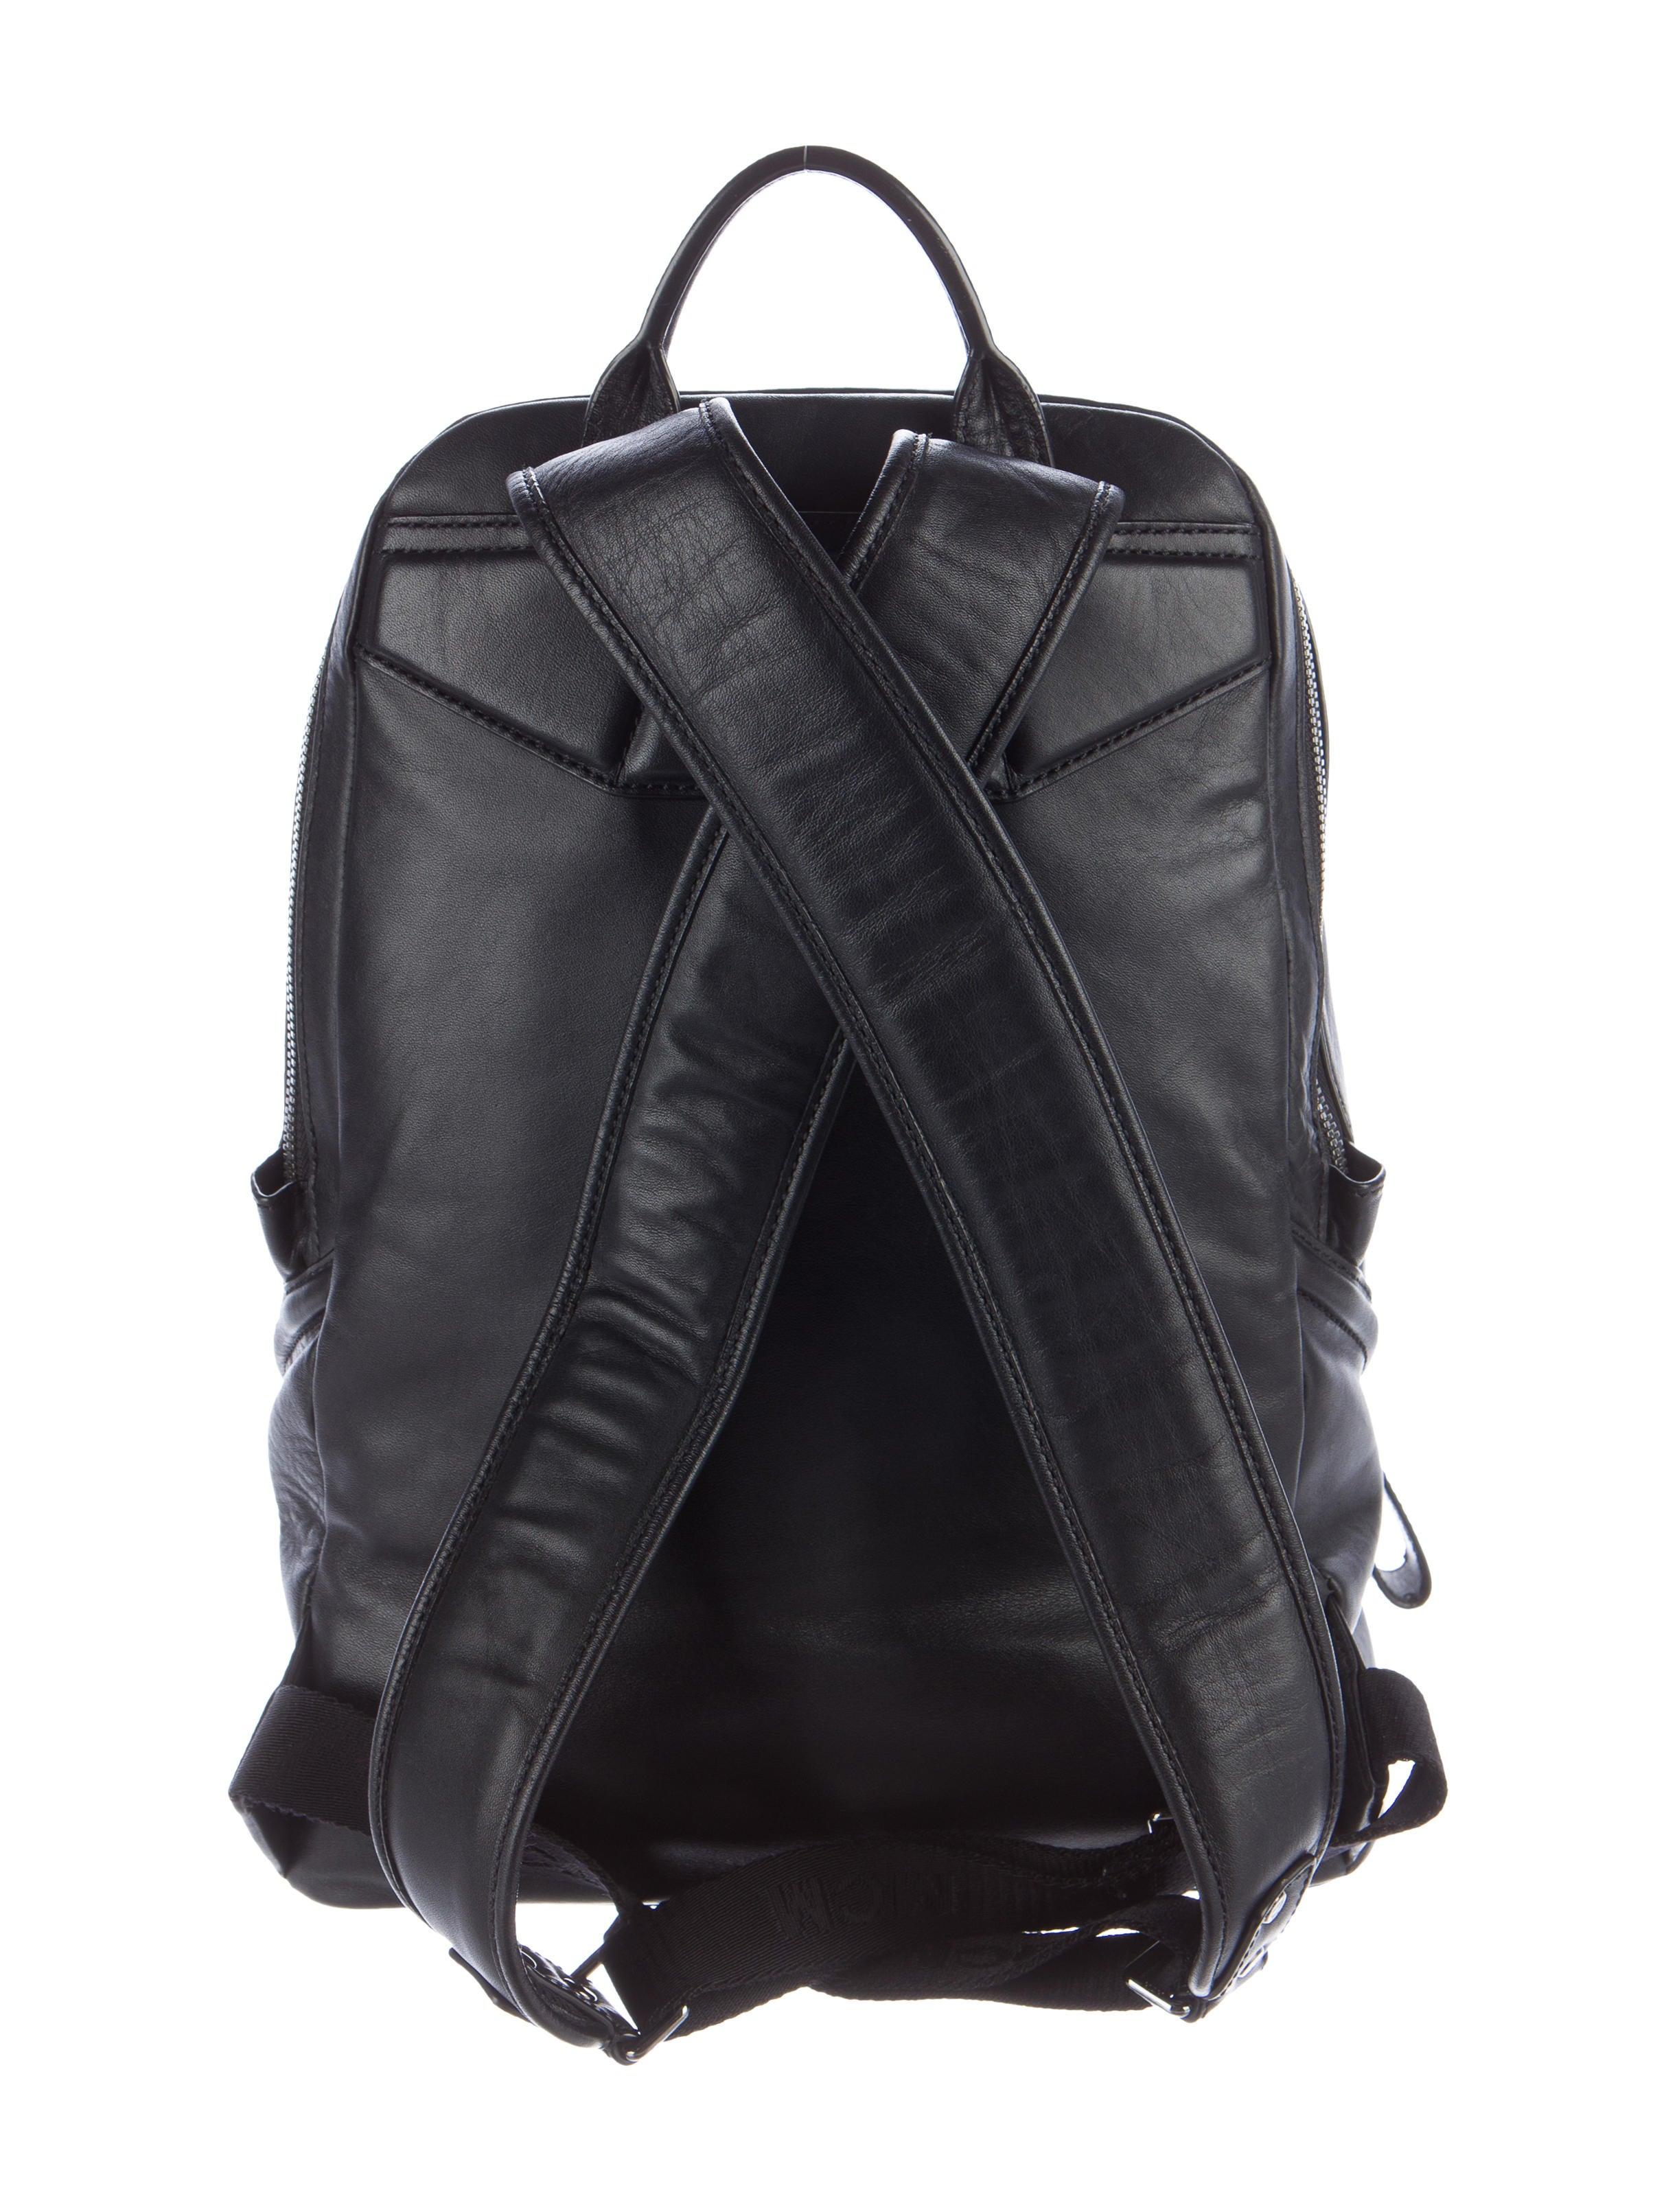 953f10408355 MCM Embossed Leather Backpack - Bags - W3021352 | The RealReal